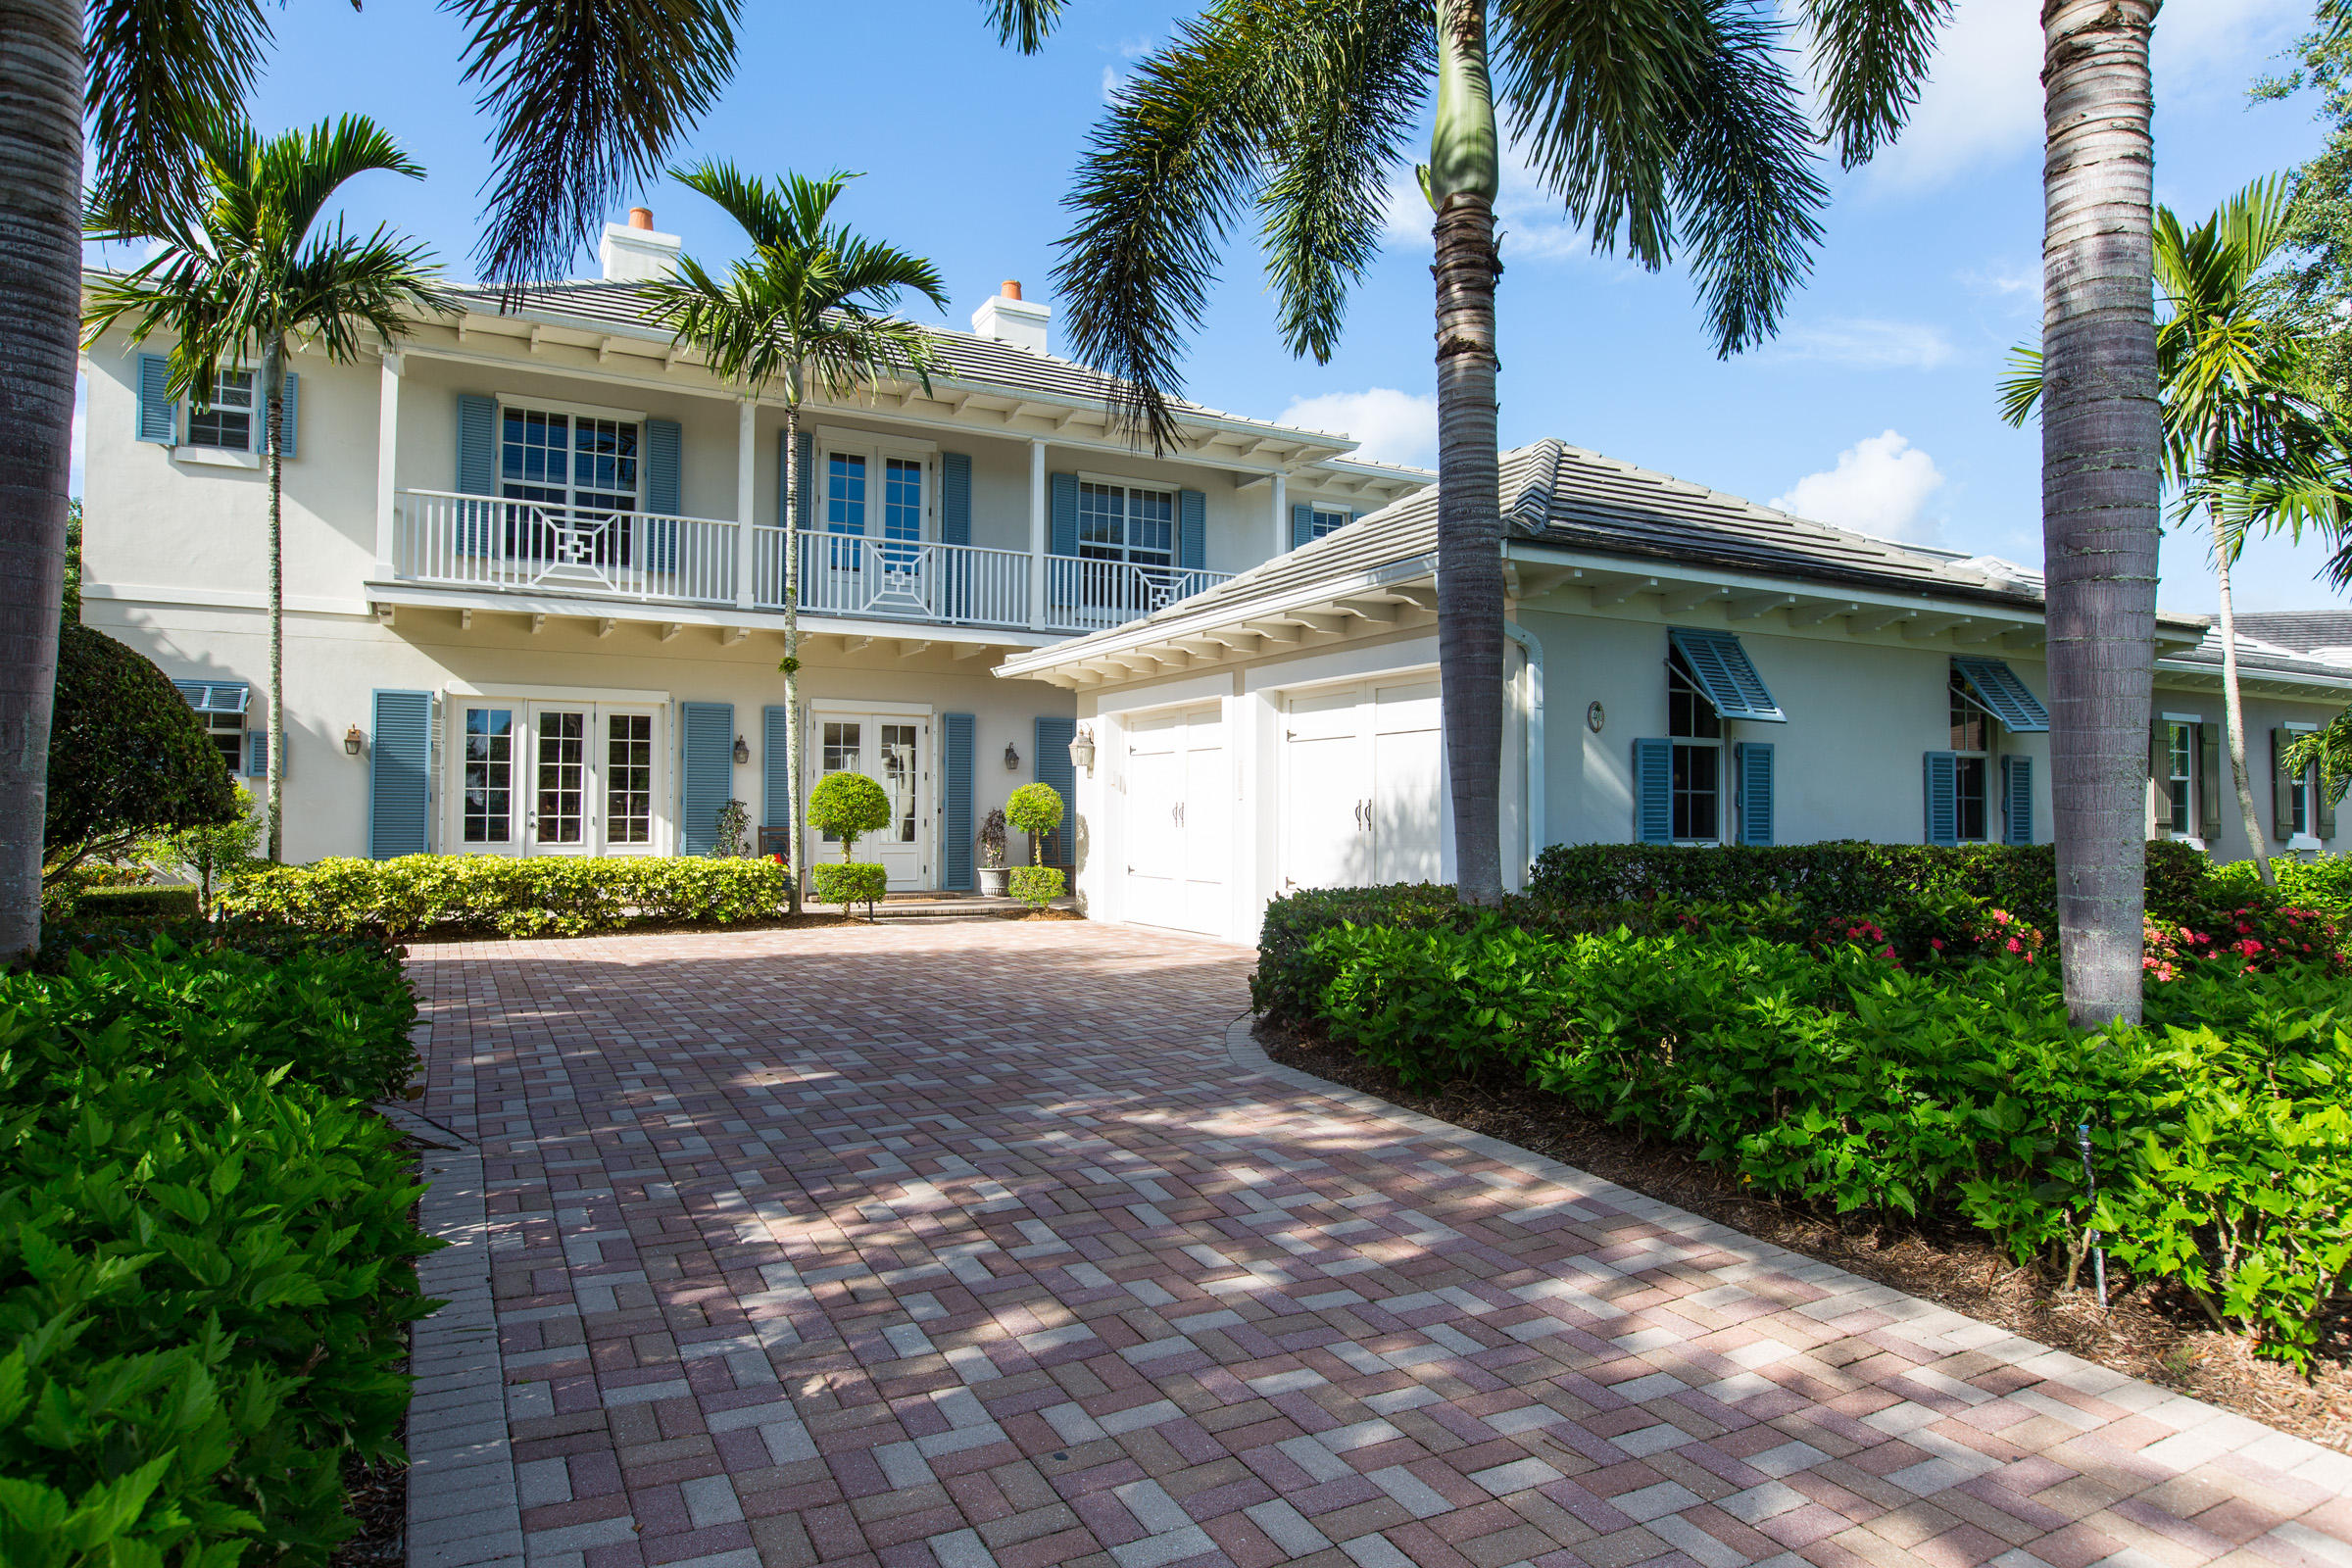 403 Palm Island Indian River Shores 32963